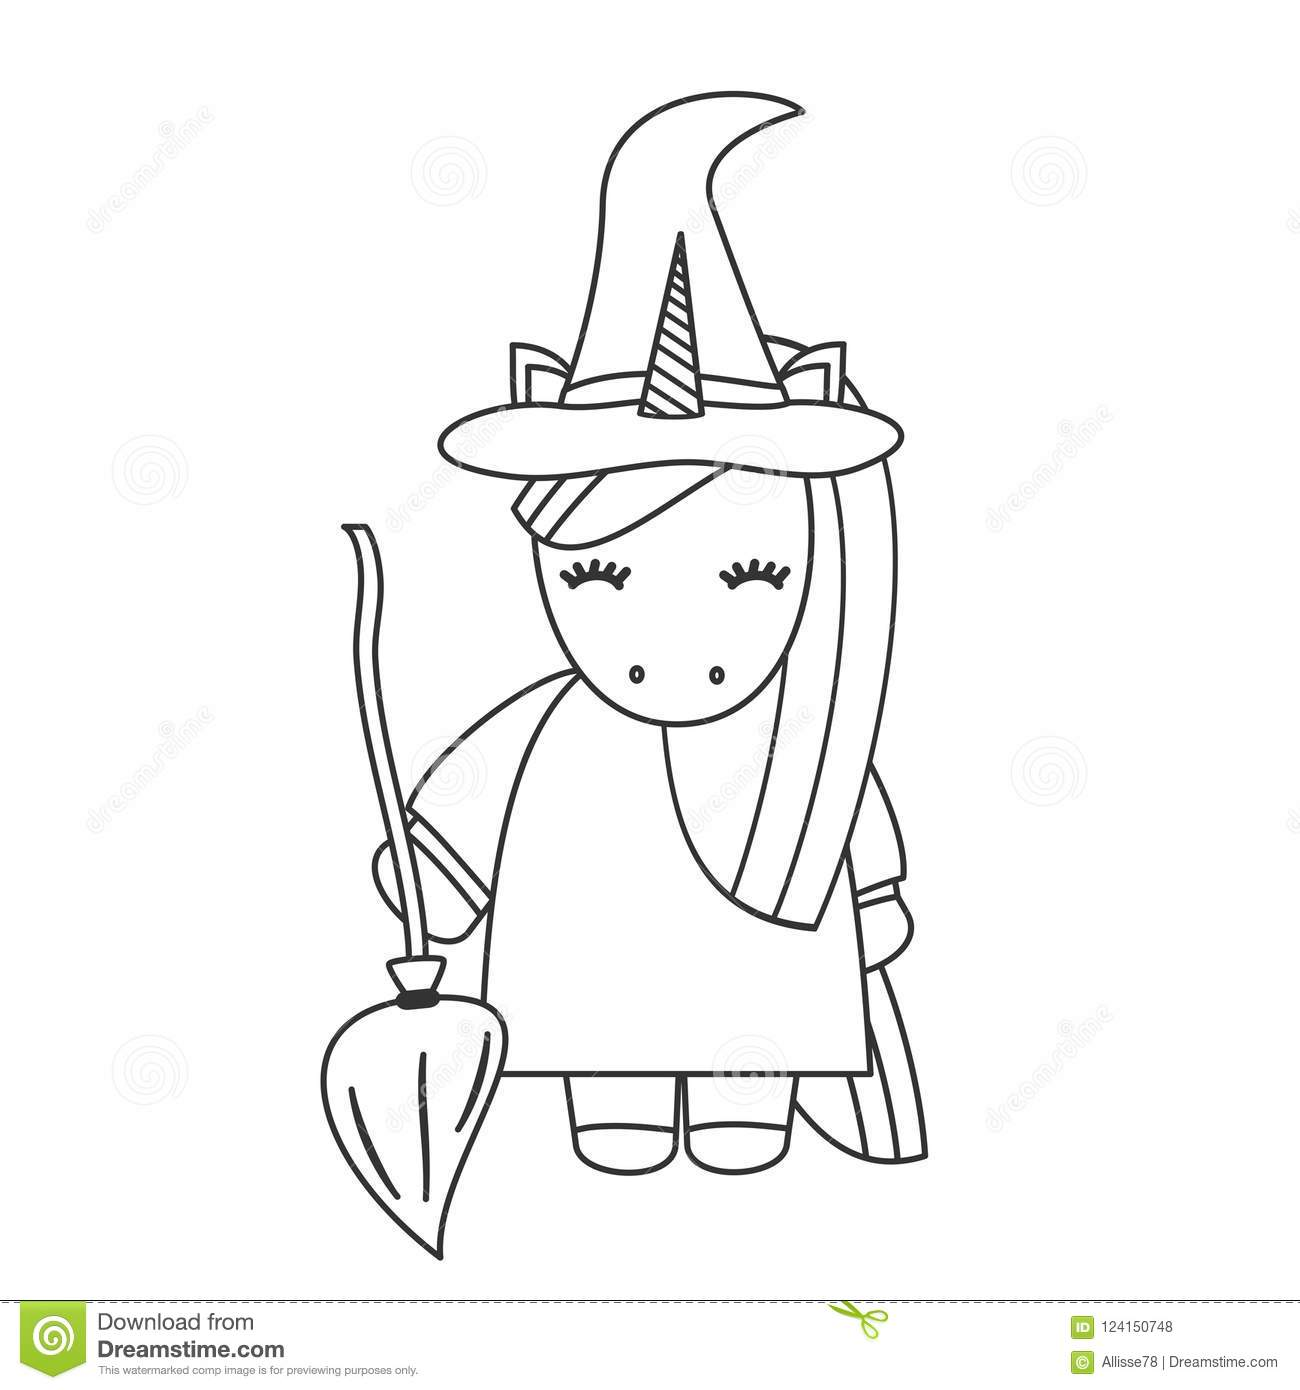 Cute cartoon black and white unicorn witch with broom halloween illustration isolated